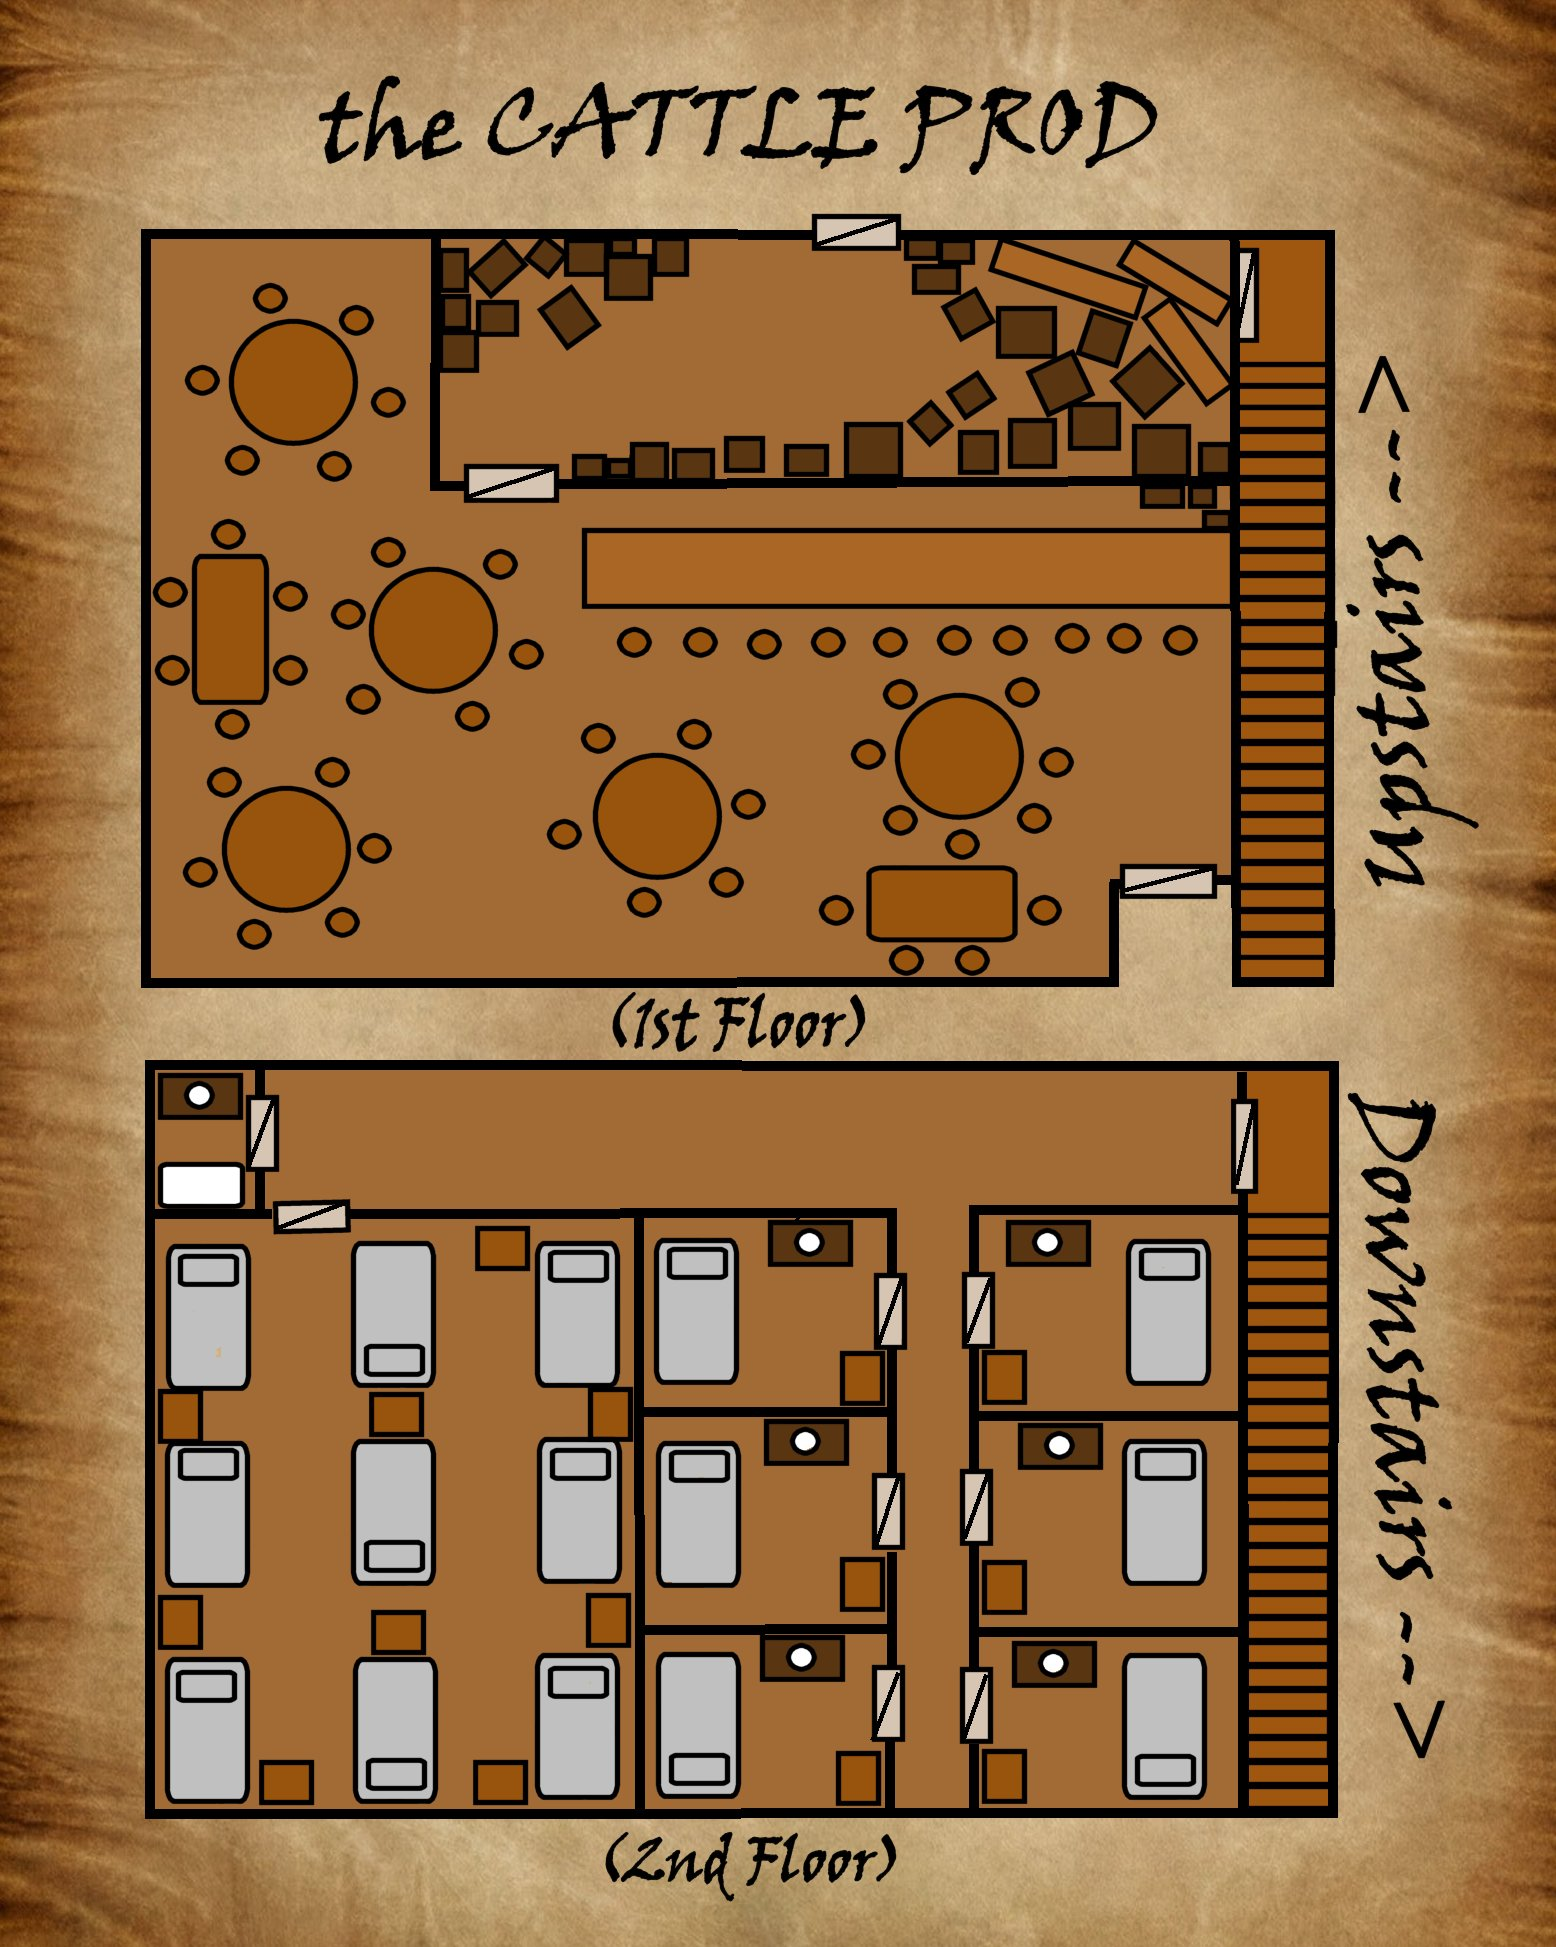 the Cattle Prod Inn - I drew this for an RP that ended up having a very short lifespan. I know it's not great. What I'm looking for are pointers about what I'm doing (or appear to be doing) right and what I'm doing wrong so that I can improve. I don't consider myself a cartographer, but as a DM I feel I owe it to my players to have better maps than just chicken scratch that vaguely gives some idea.